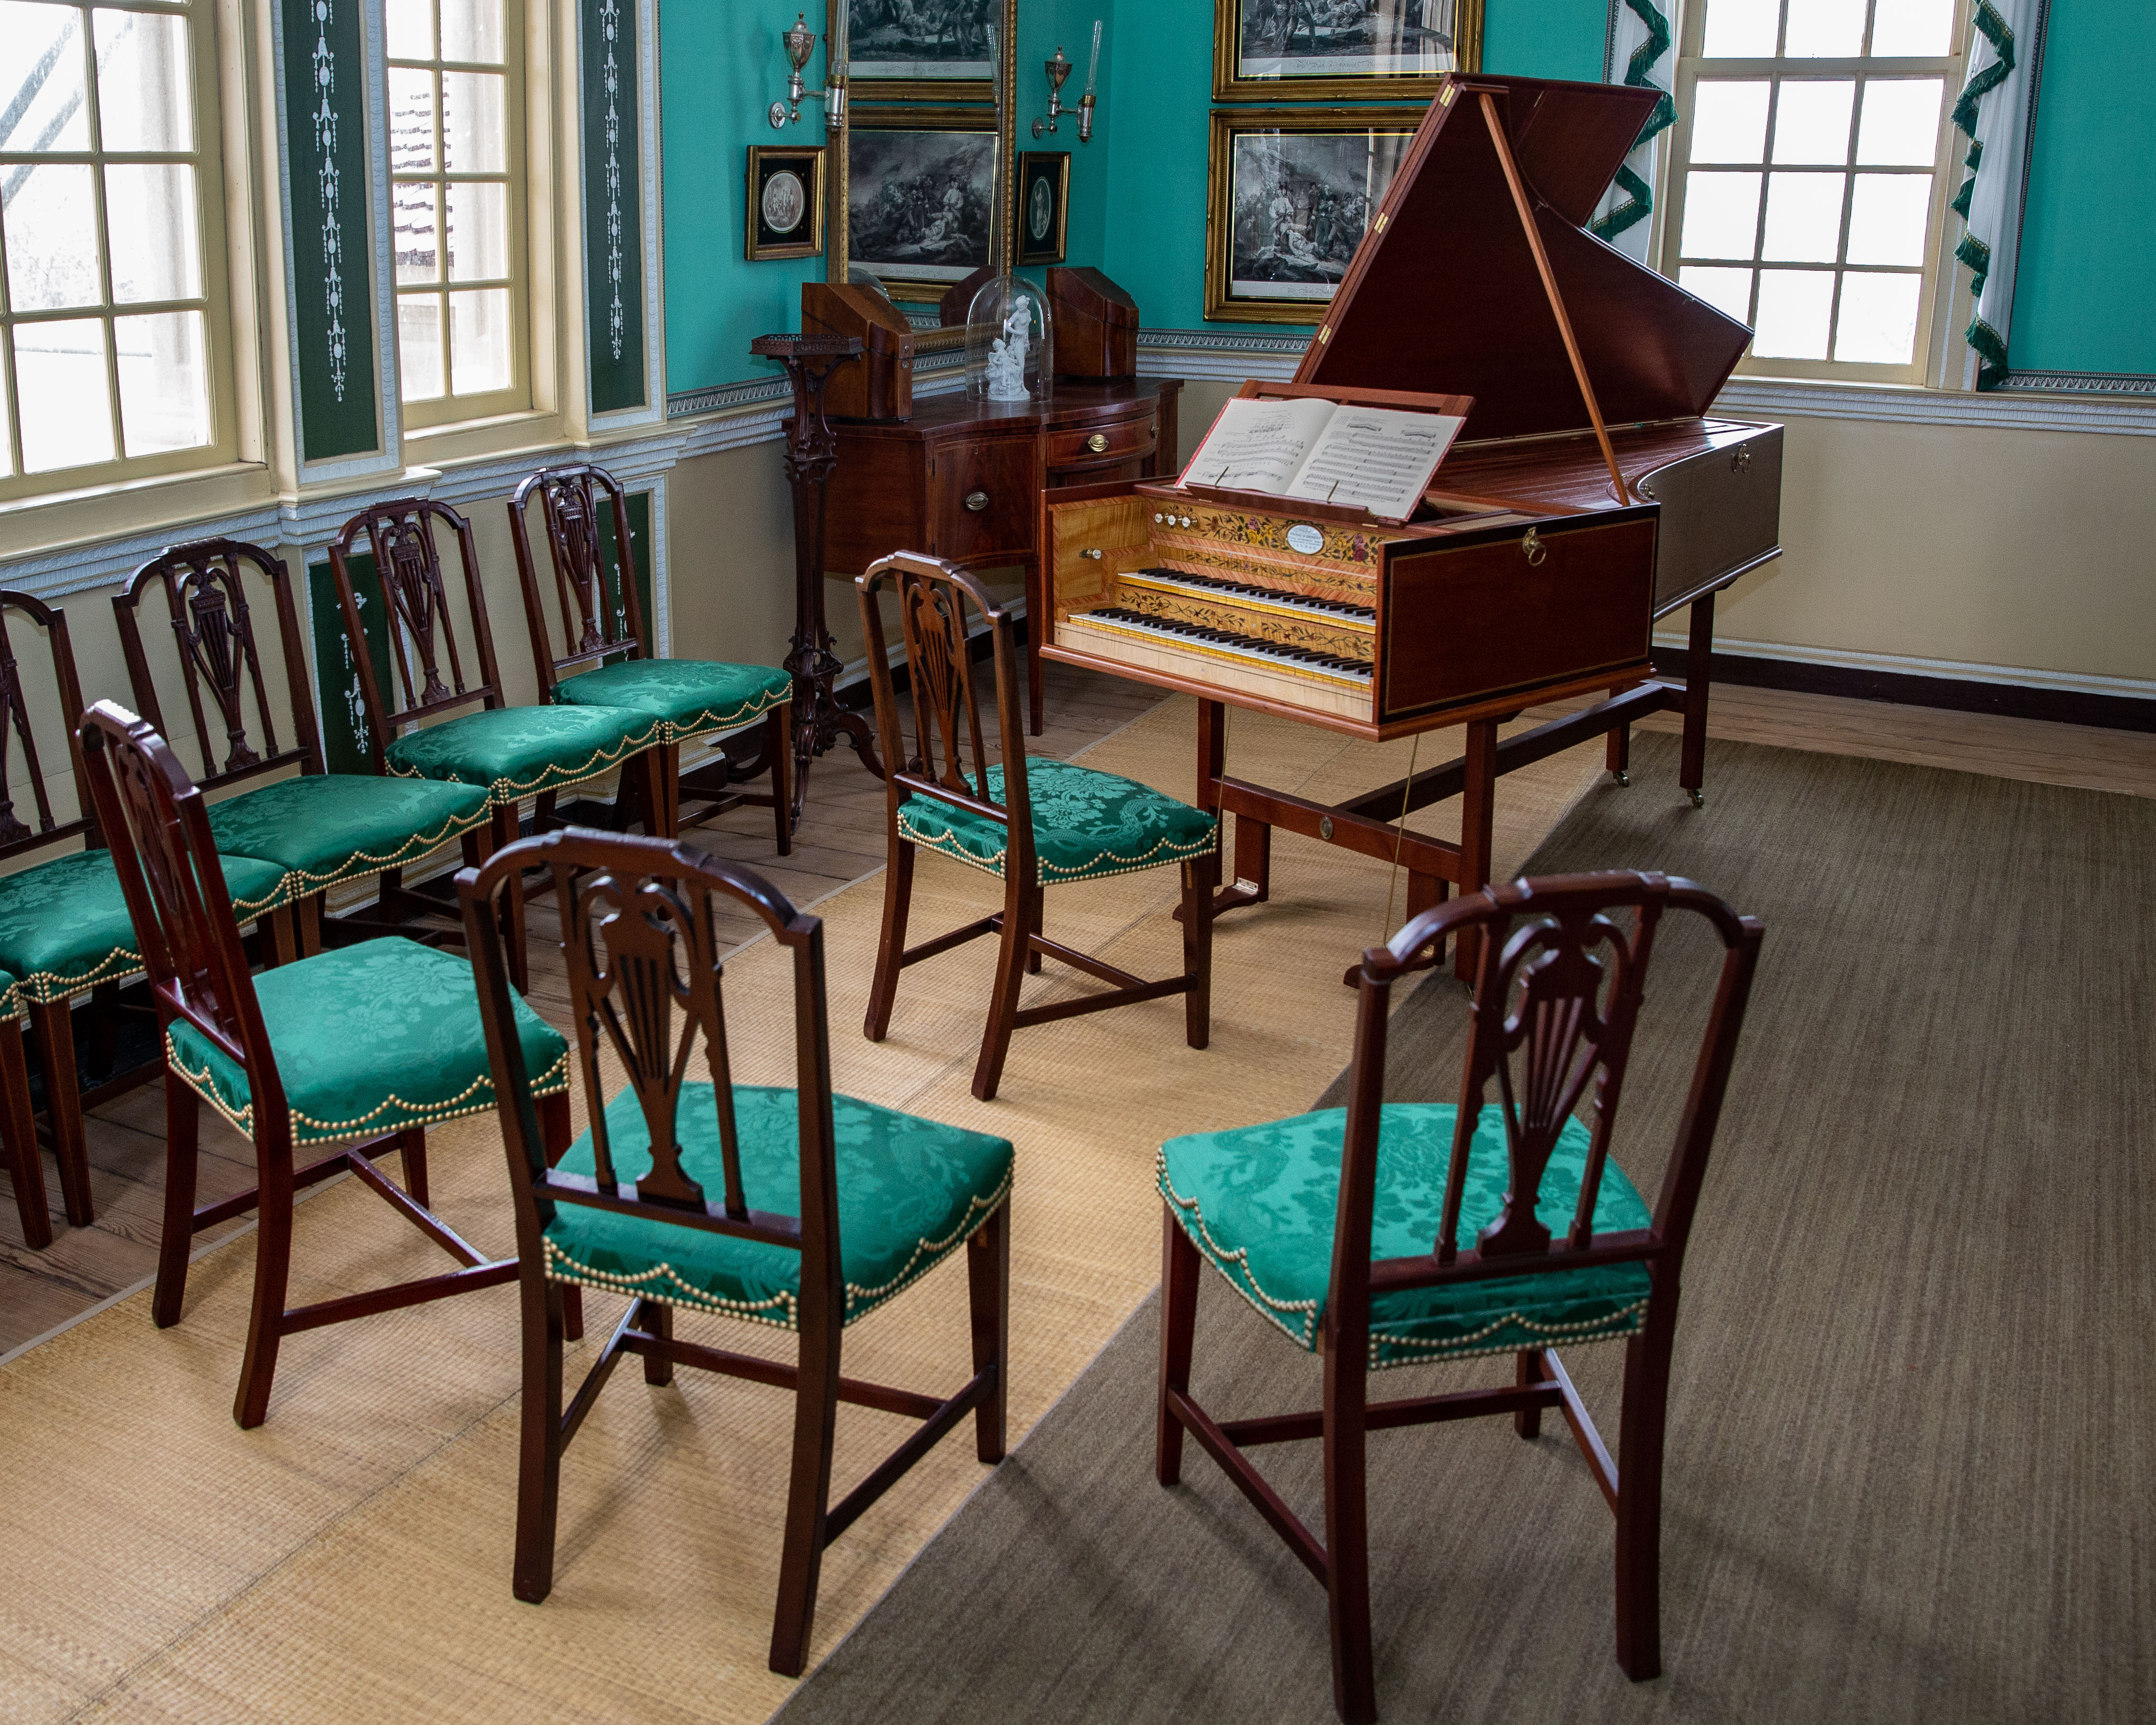 Nelly Custis's reproduction harpsichord on display in the New Room of the Mansion.